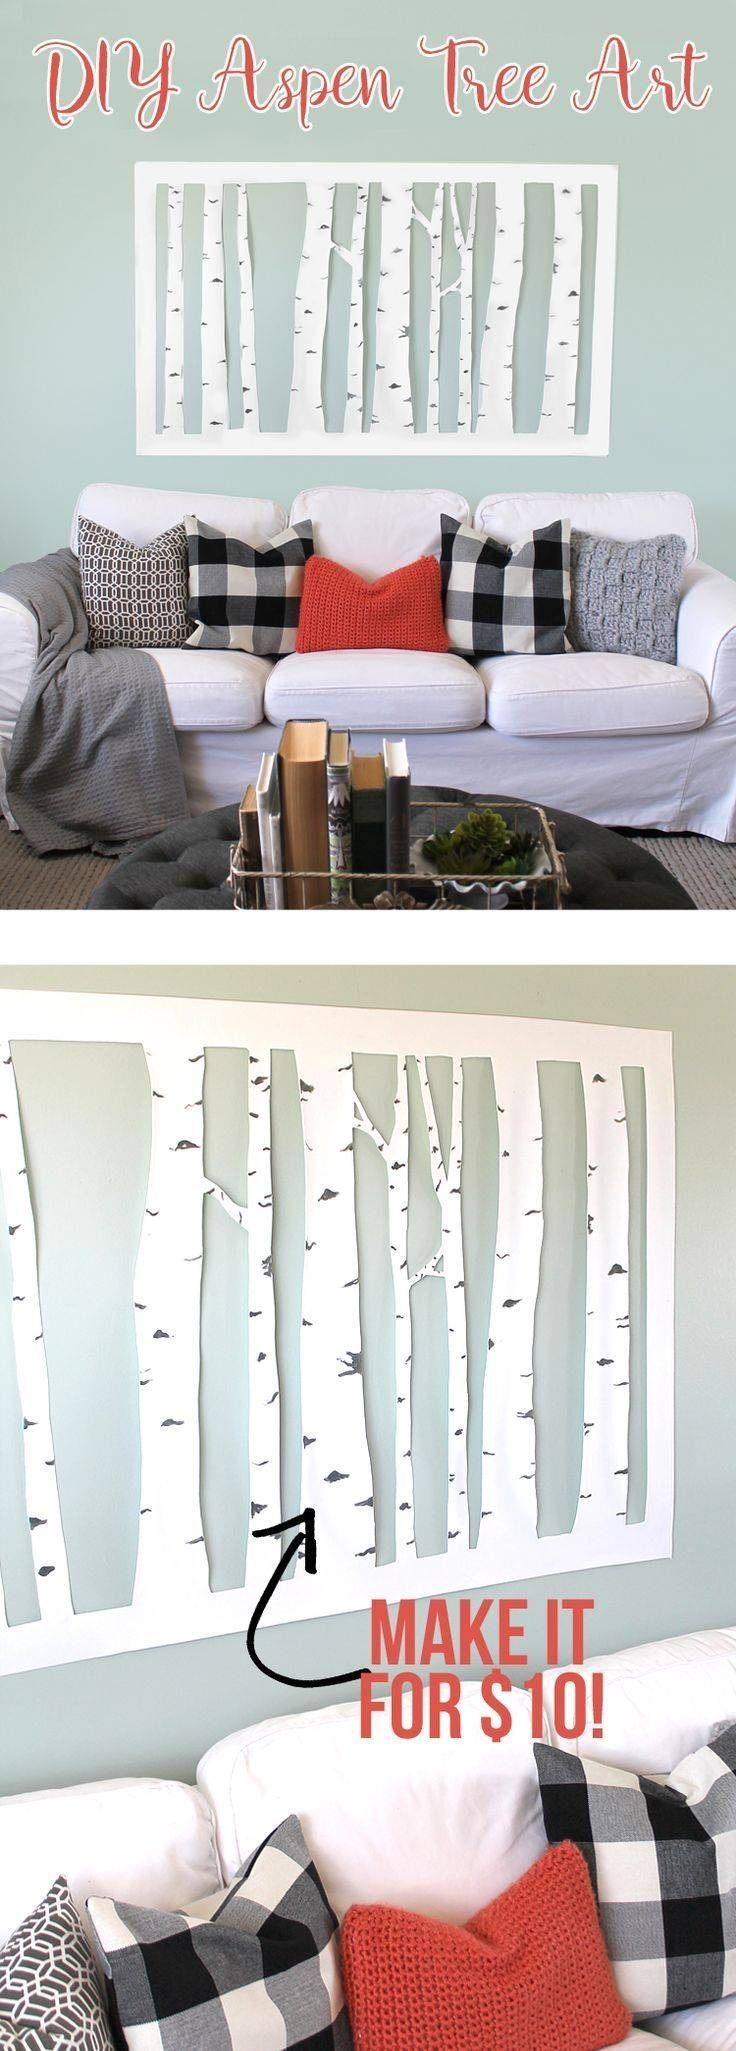 25+ Unique Cheap Wall Art Ideas On Pinterest | Easy Wall Art Throughout Recent Large Cheap Wall Art (View 1 of 15)